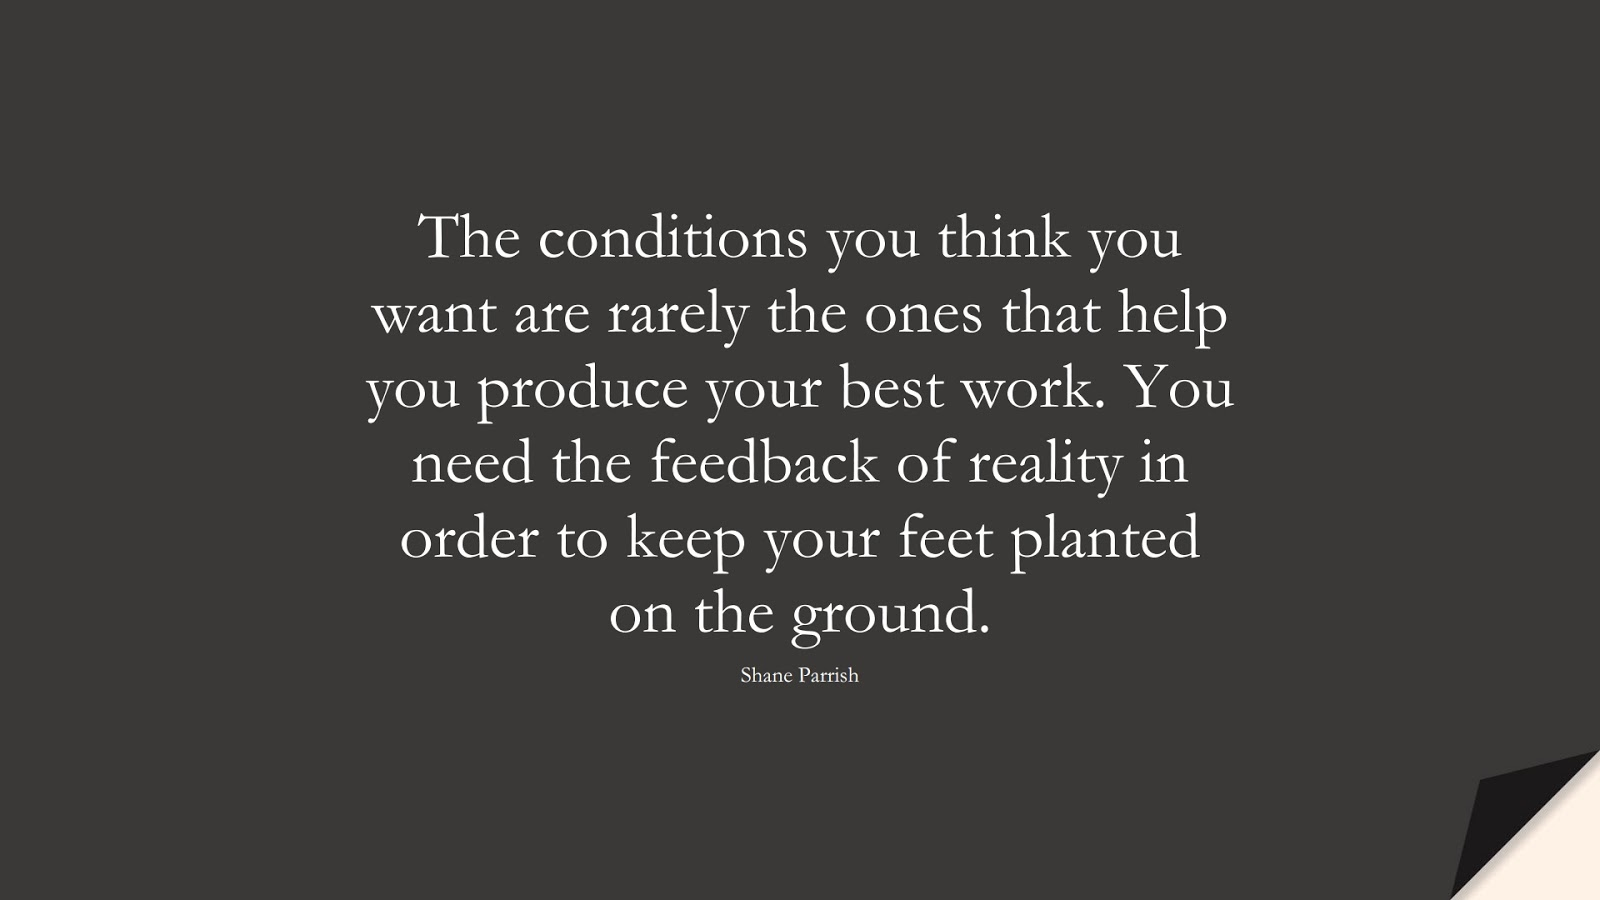 The conditions you think you want are rarely the ones that help you produce your best work. You need the feedback of reality in order to keep your feet planted on the ground. (Shane Parrish);  #EncouragingQuotes